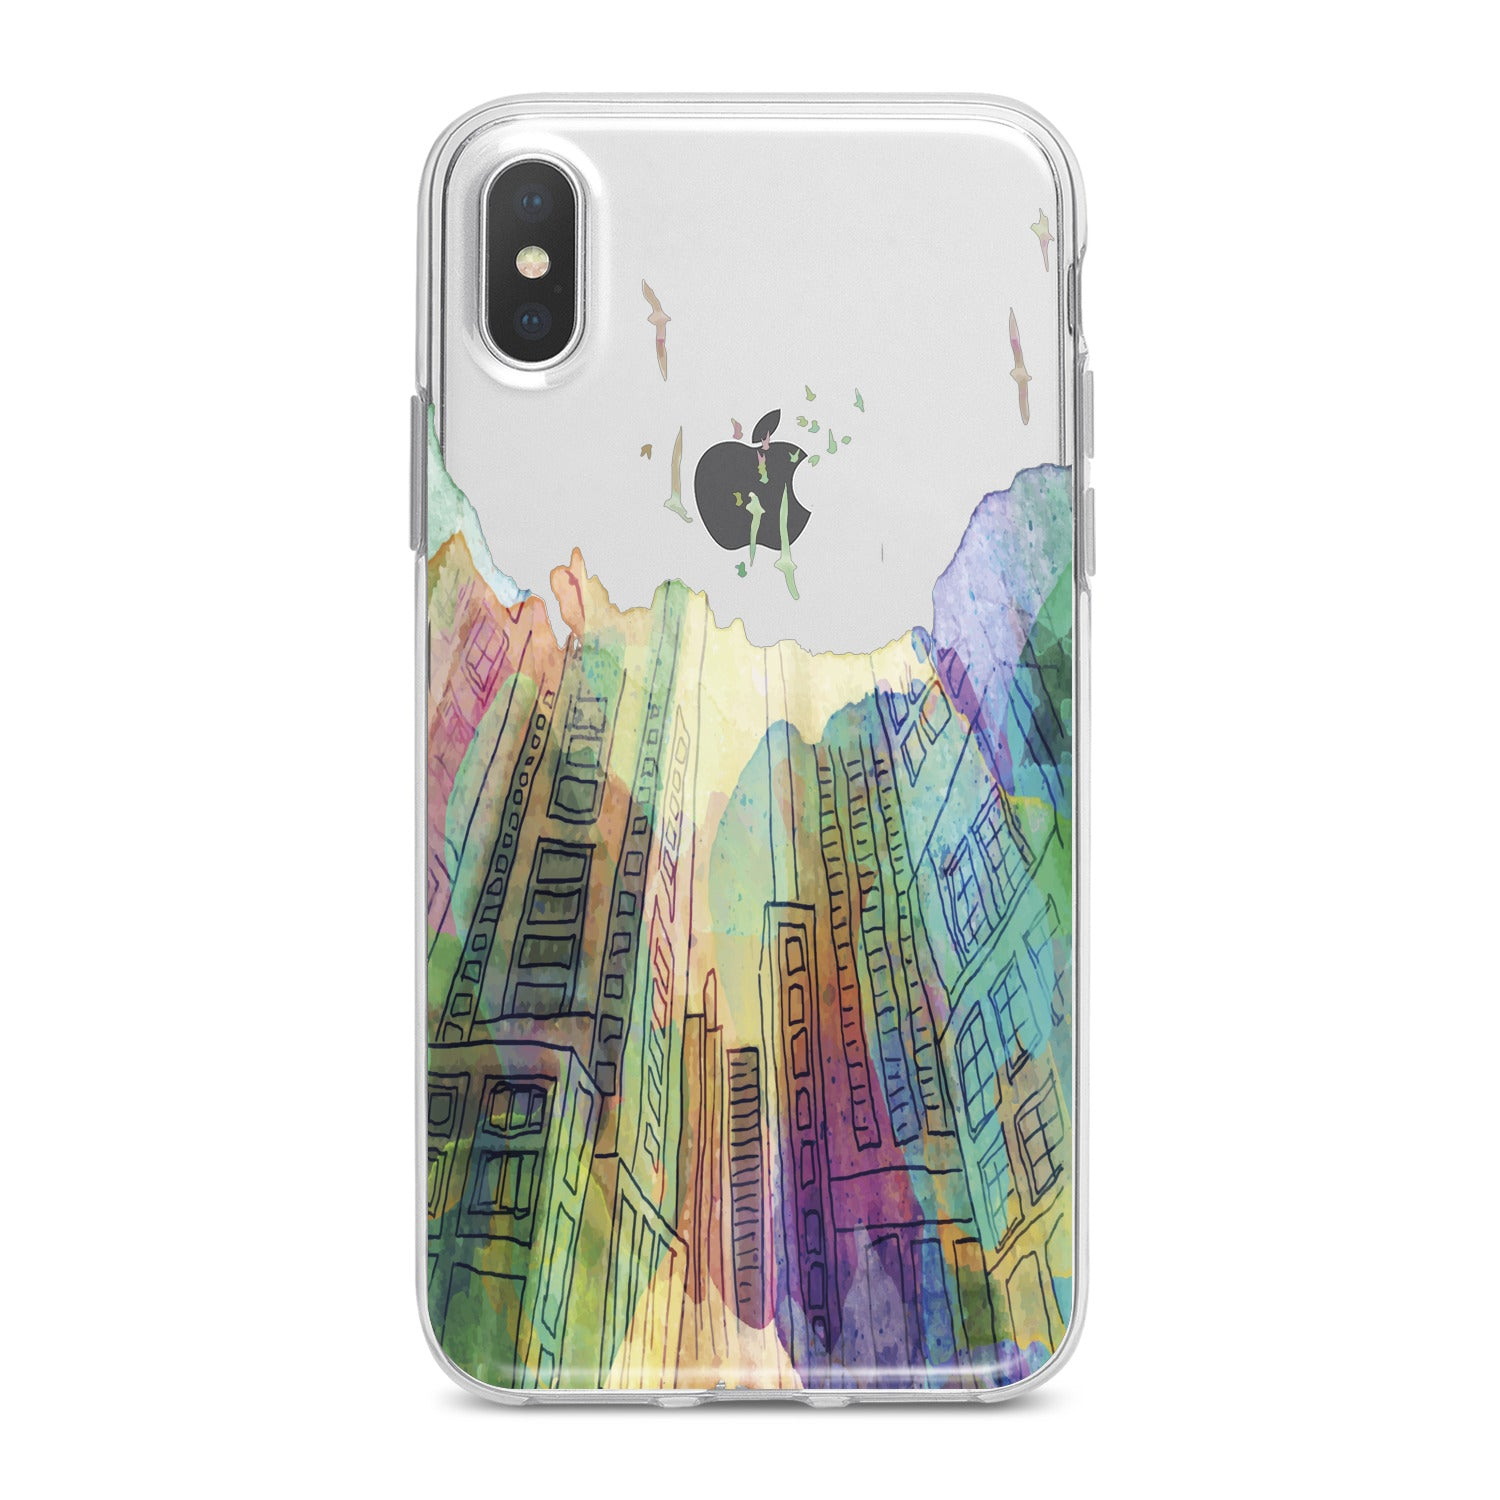 Lex Altern Watercolor City Phone Case for your iPhone & Android phone.